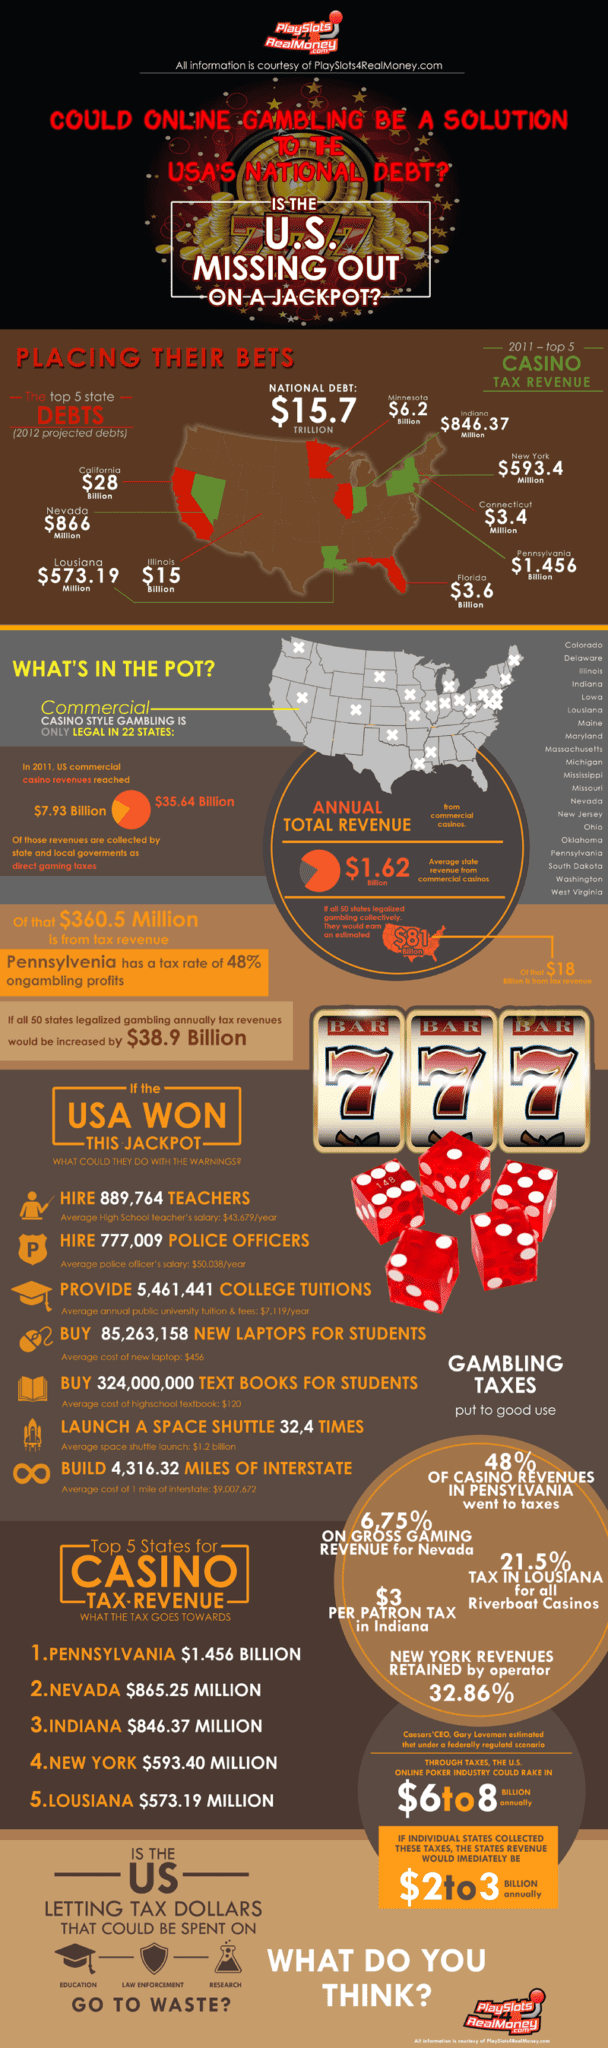 best online real casino usa